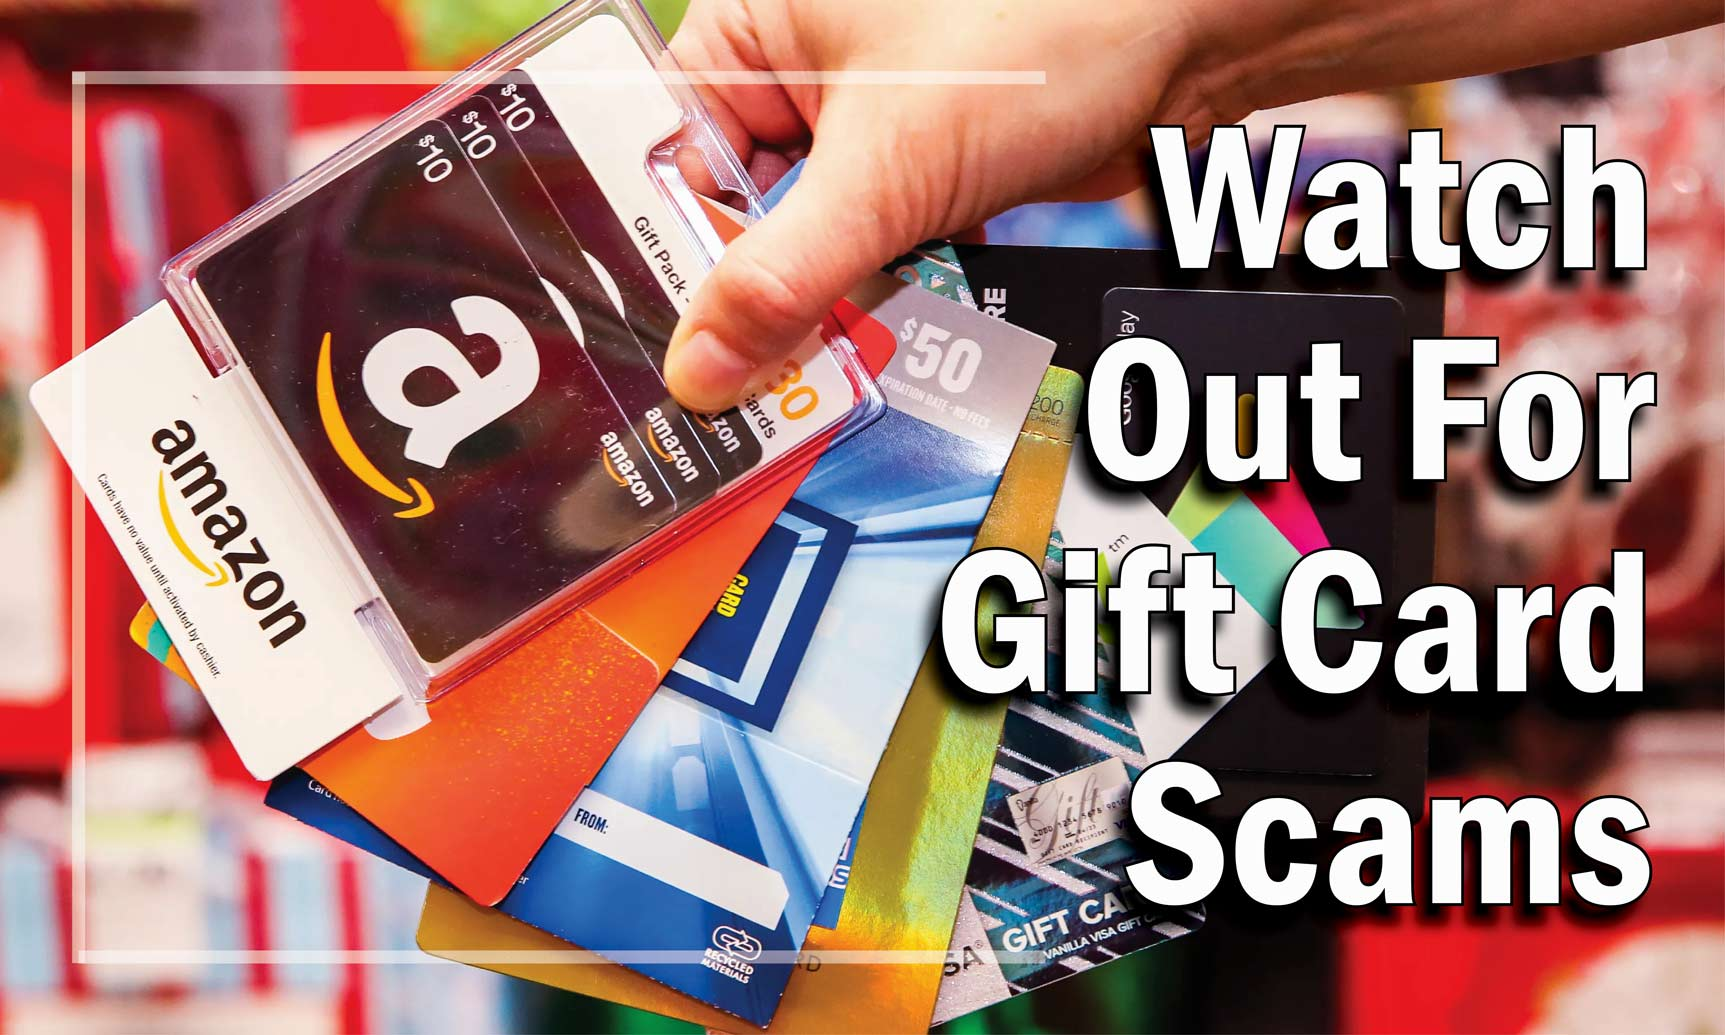 Watch Out For Gift Card Scam